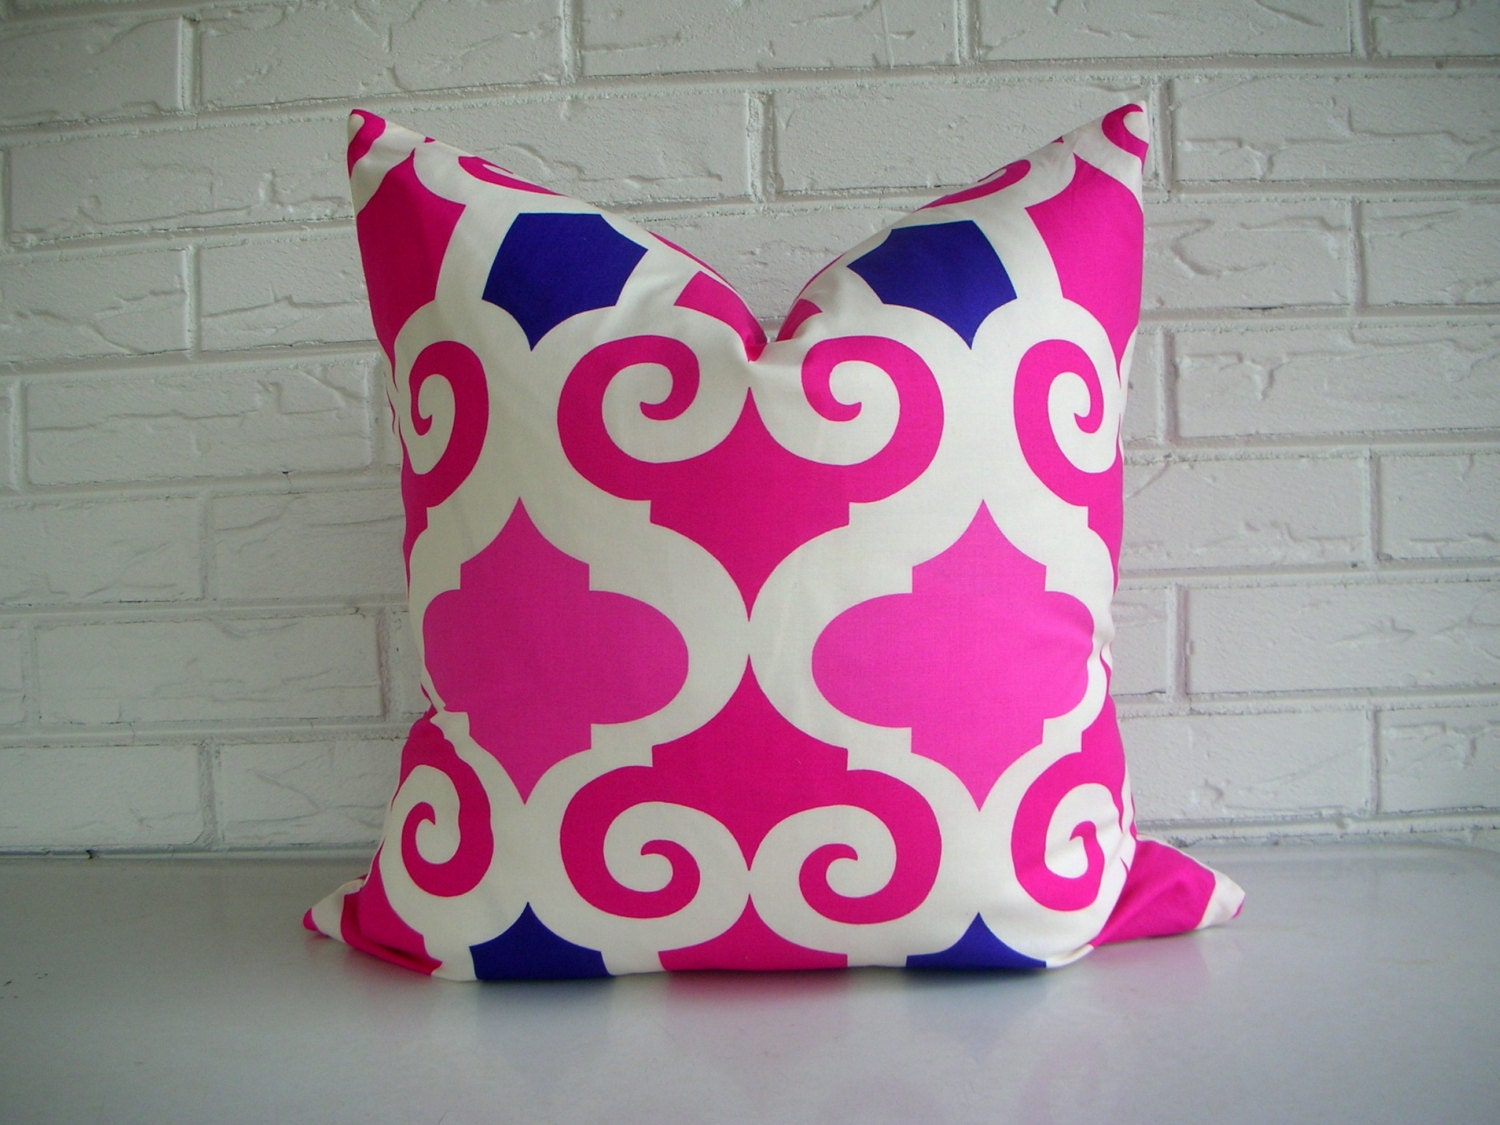 Pink Moroccan Throw Pillow Decorative Pillow Cover Fuchsia. Room And Board Daybed. Decorative Plant Hangers Indoor. Virtual Room Painter. Peanuts Baby Room. Wedding Decorations Hearts. Decorative Railing Interior. Decorative Gift Boxes. Rooms For Rent In Chicago South Side